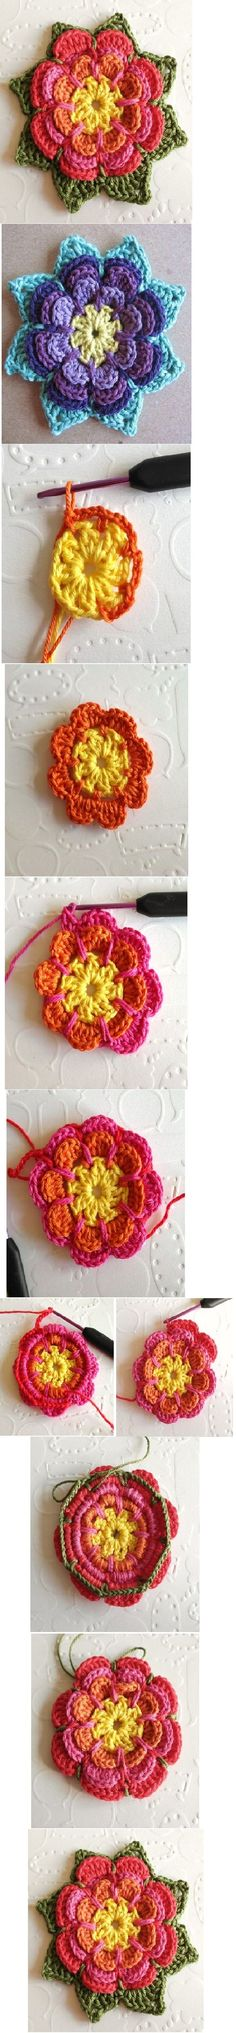 flower crochet motif - quick tutorial! by KathrynBArnold